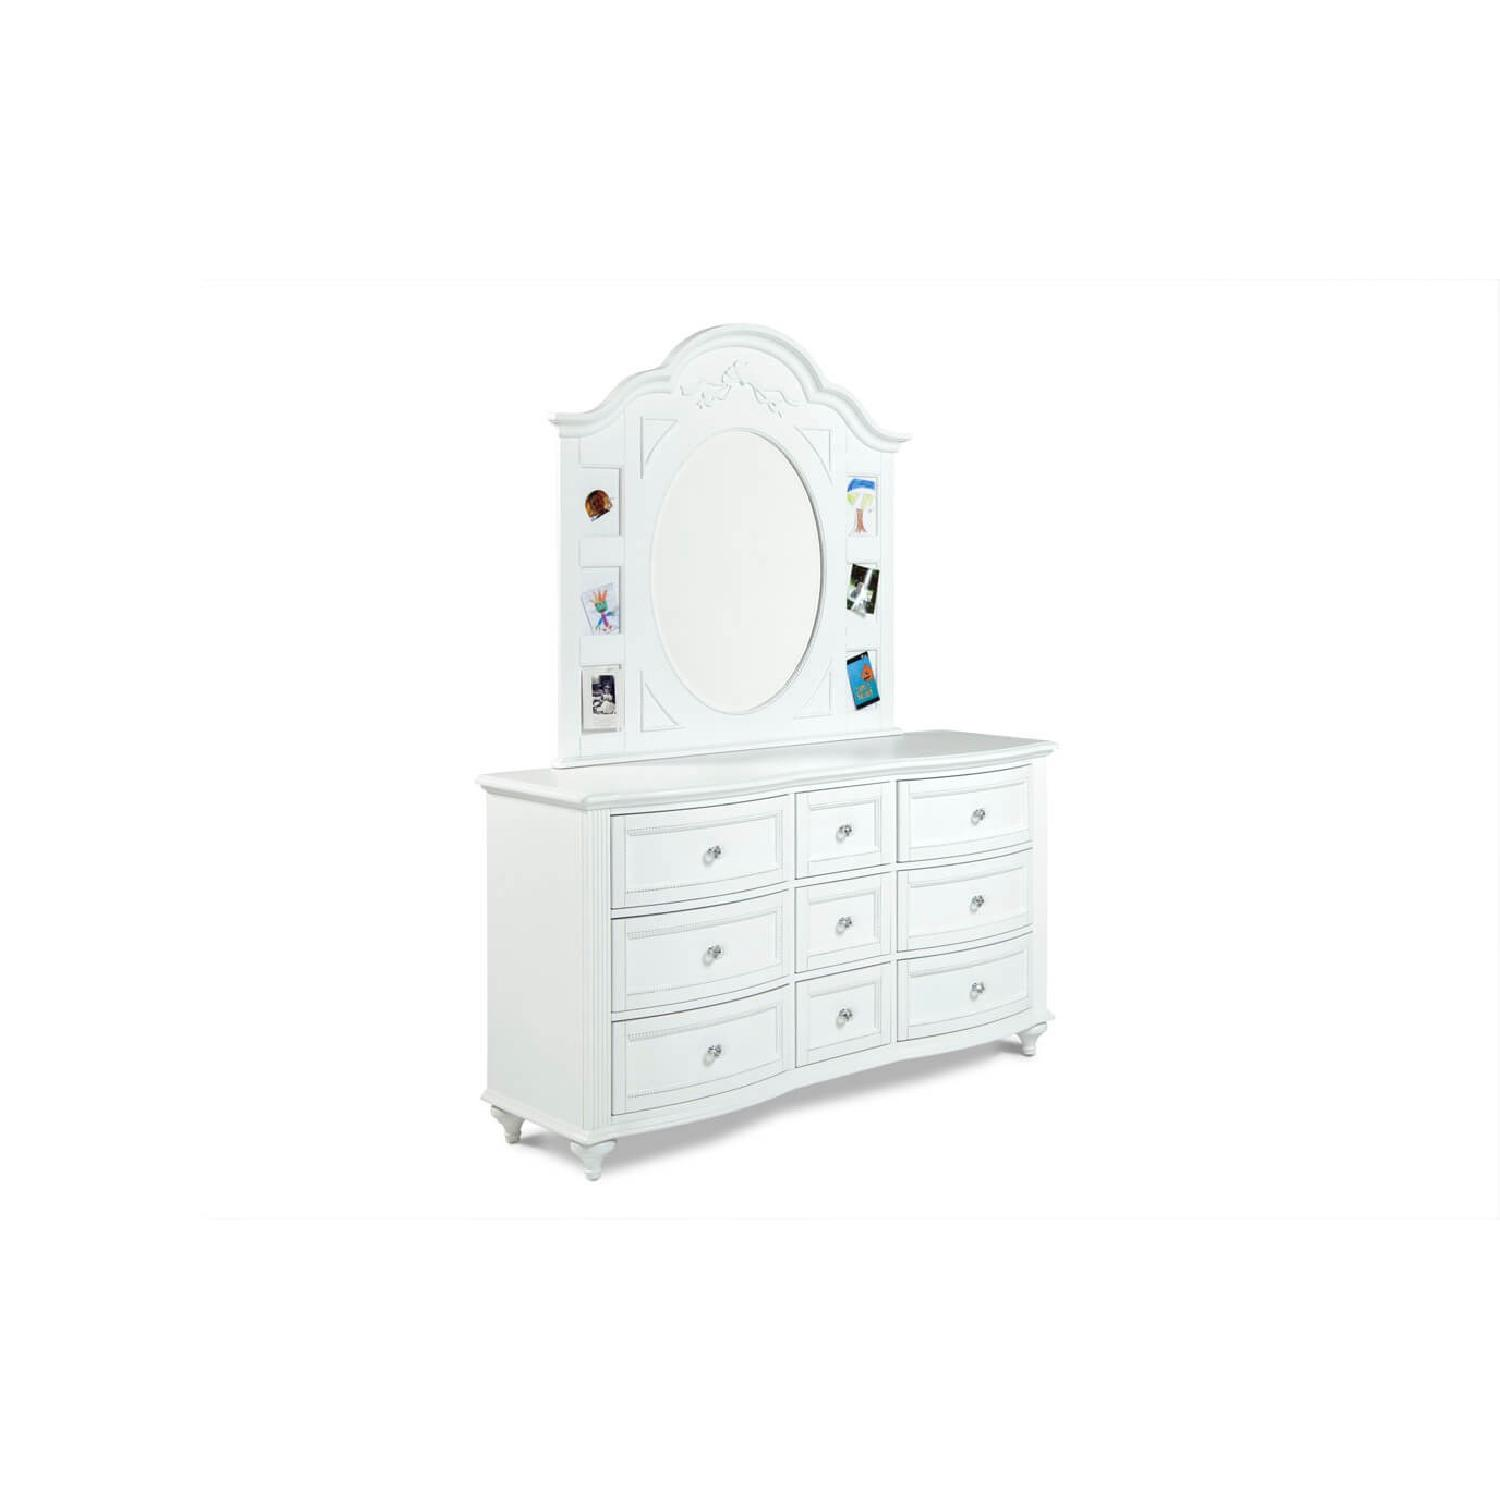 Bobu0027s Madelyn White Dresser W/ Crystal Knobs U0026 Mirror ...